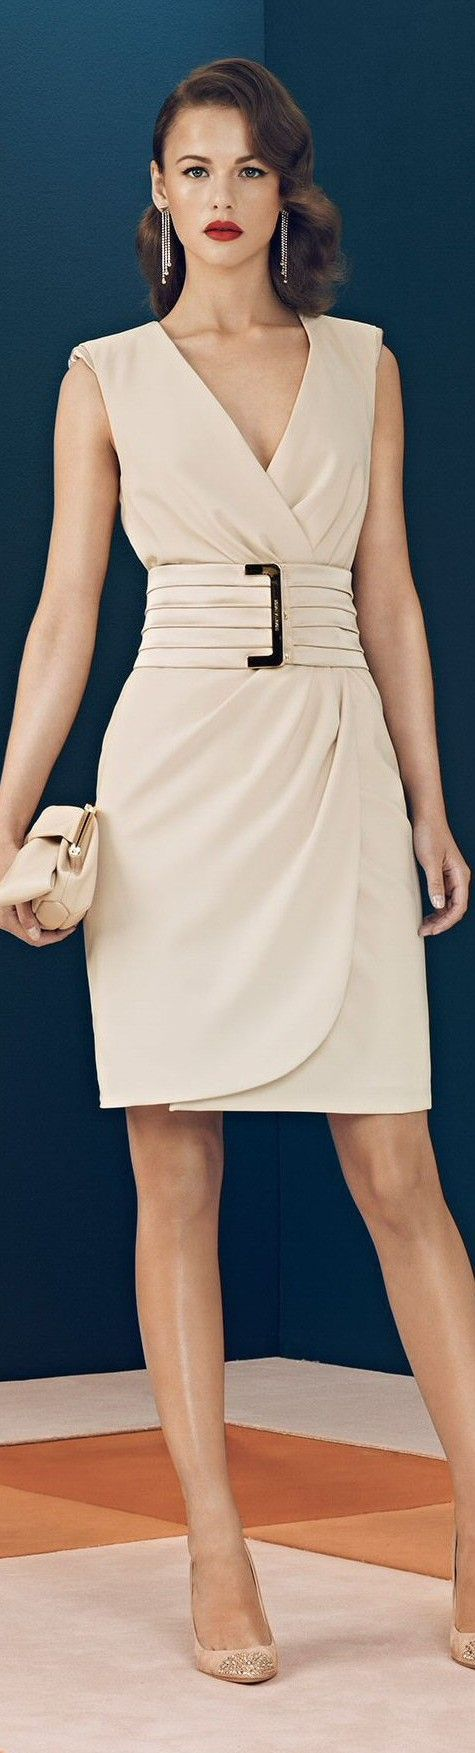 @roressclothes clothing ideas #women fashion beige dress